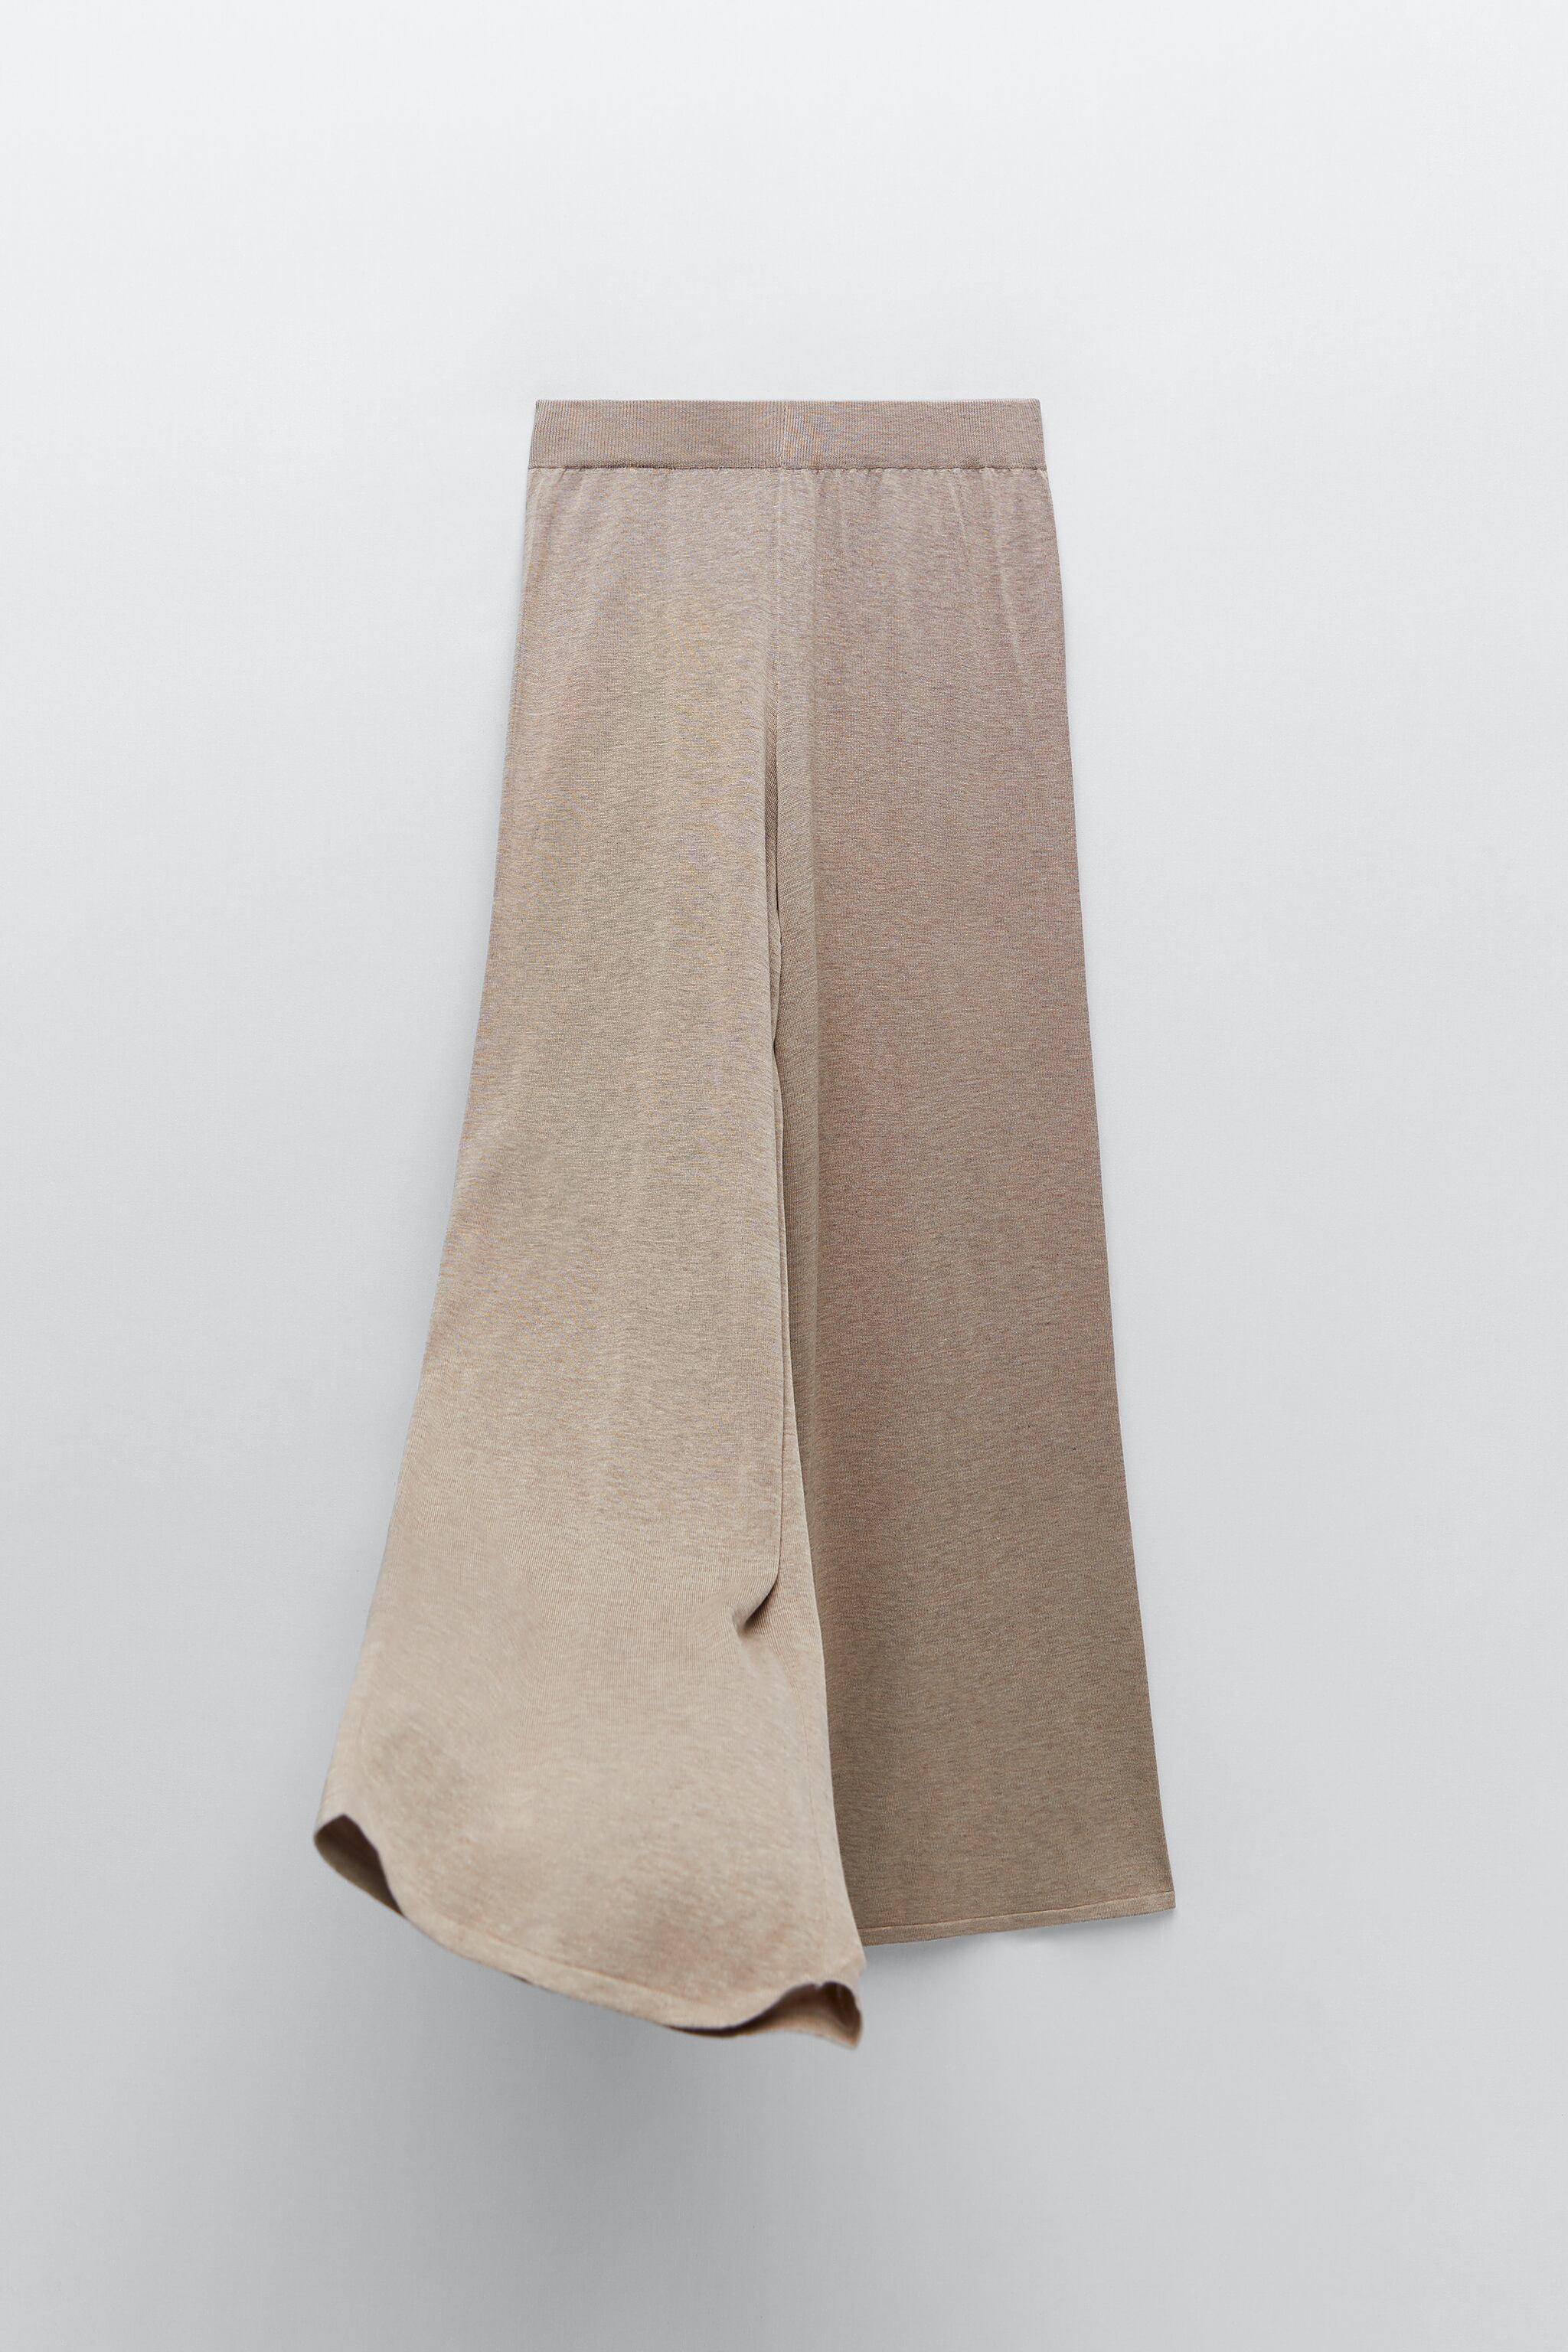 SILK BLEND PANTS LIMITED EDITION 6